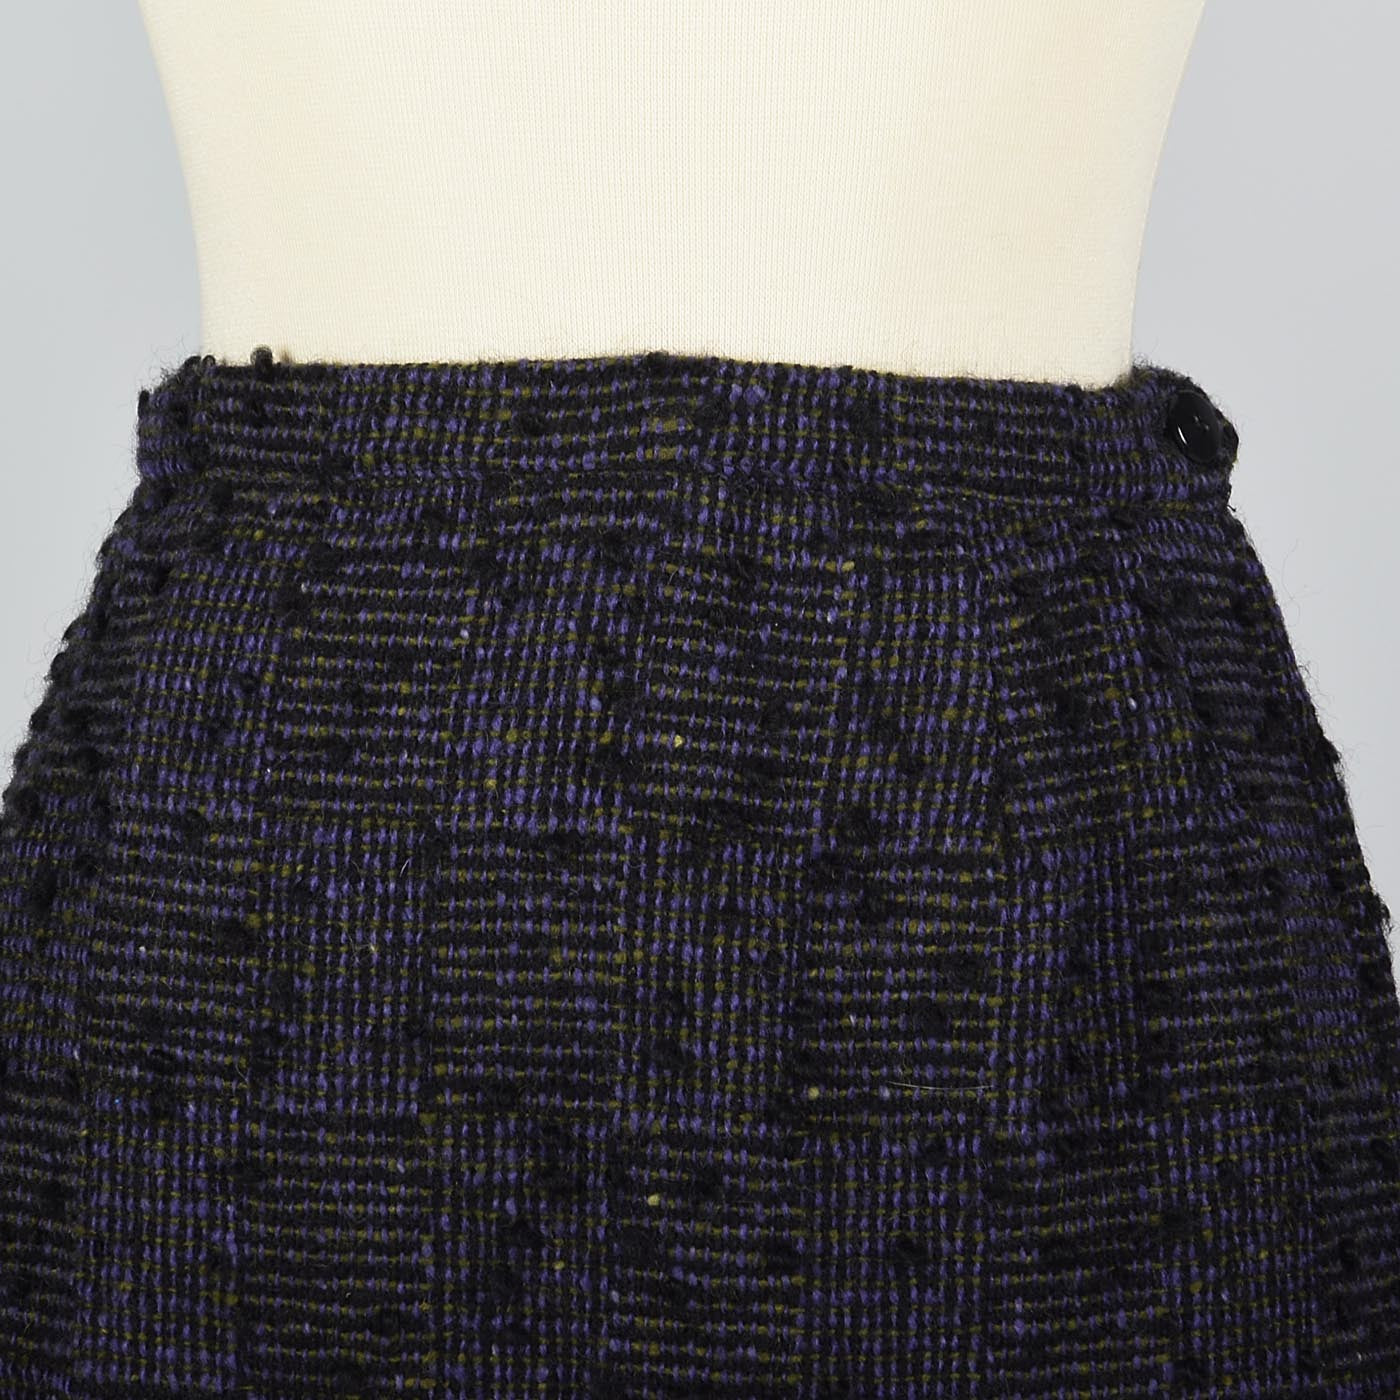 1960s Purple Tweed Top, Skirt, and Jacket Set